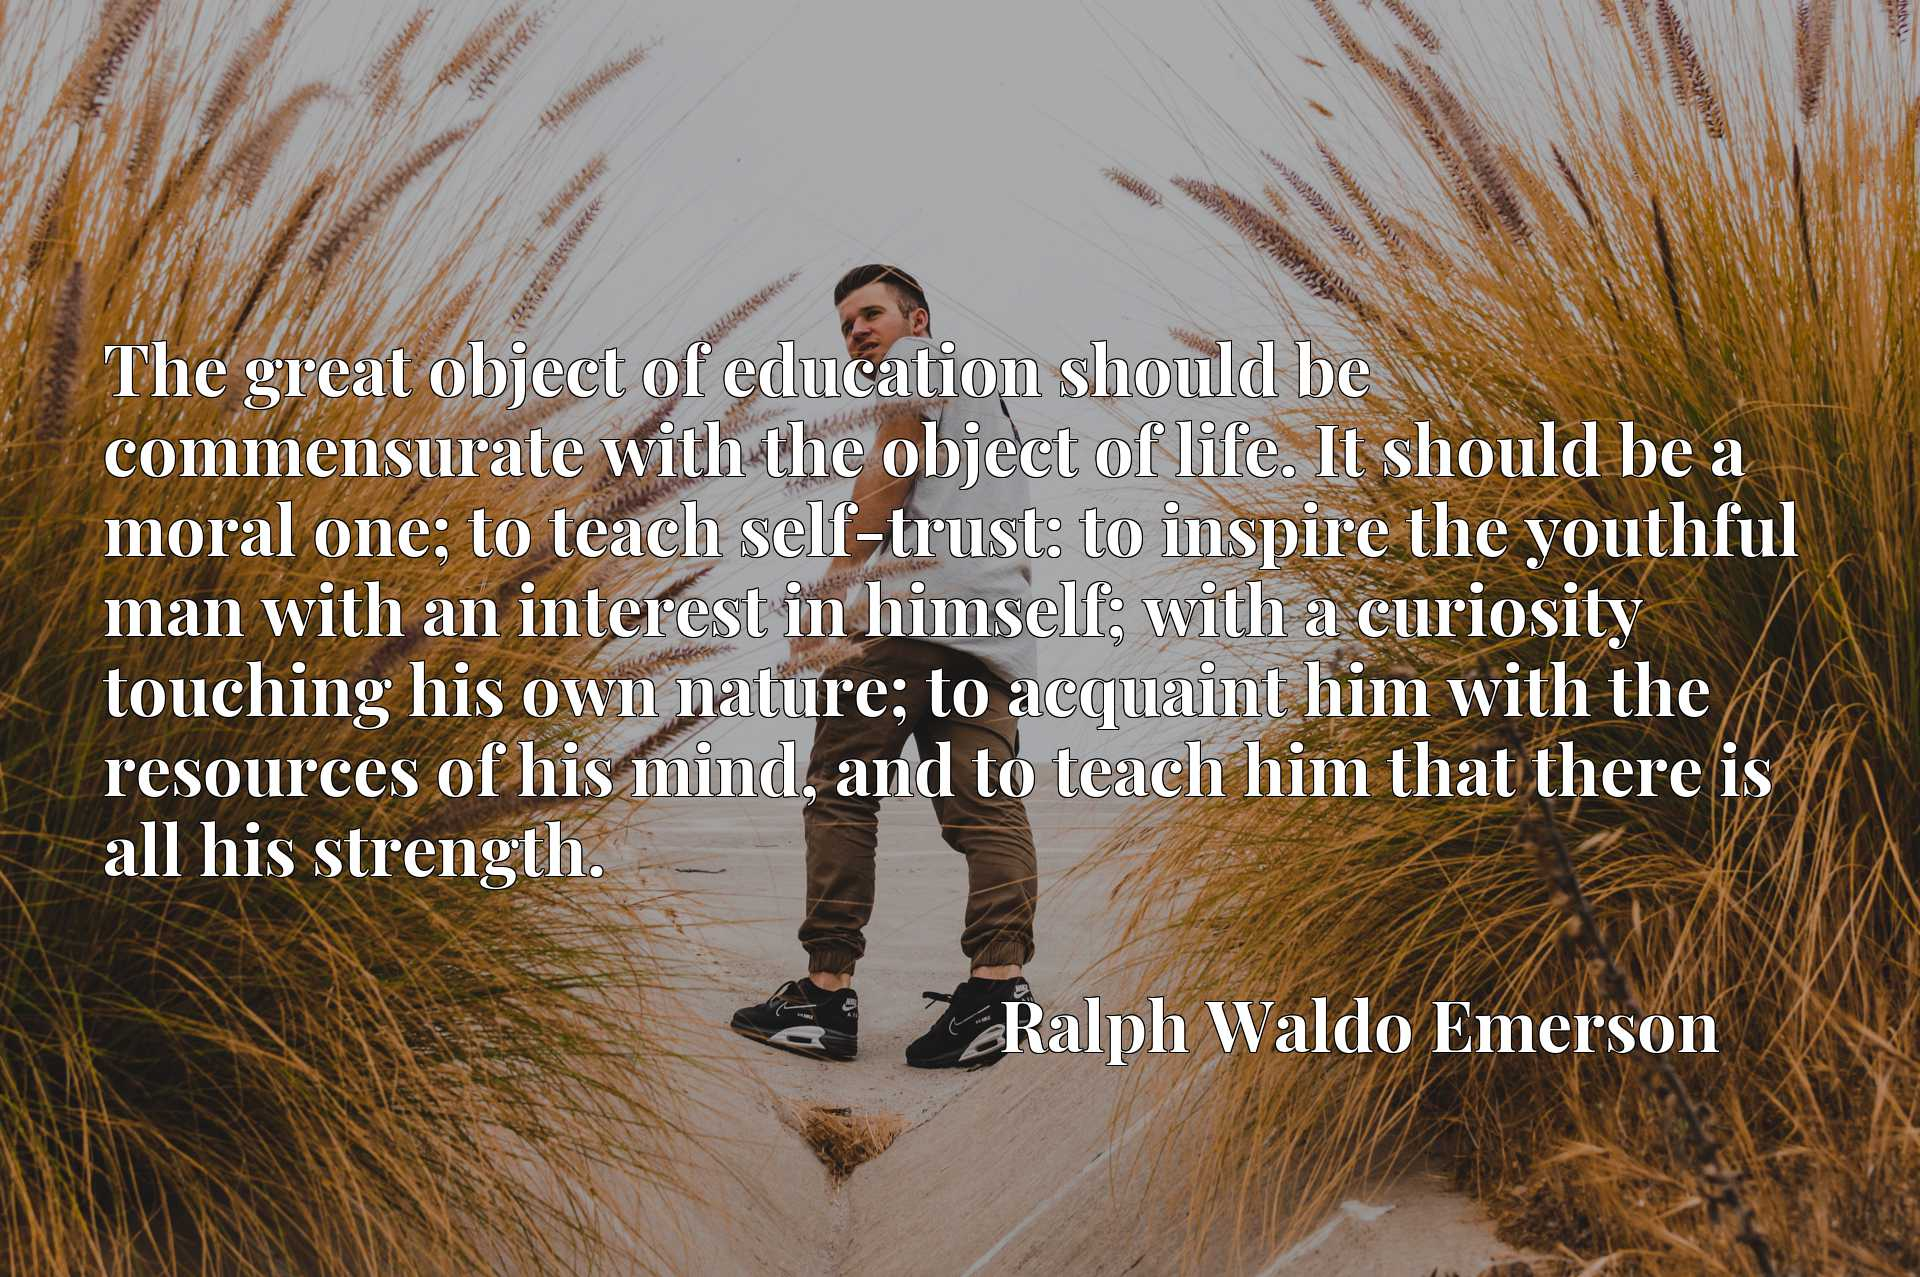 The great object of education should be commensurate with the object of life. It should be a moral one; to teach self-trust: to inspire the youthful man with an interest in himself; with a curiosity touching his own nature; to acquaint him with the resources of his mind, and to teach him that there is all his strength.